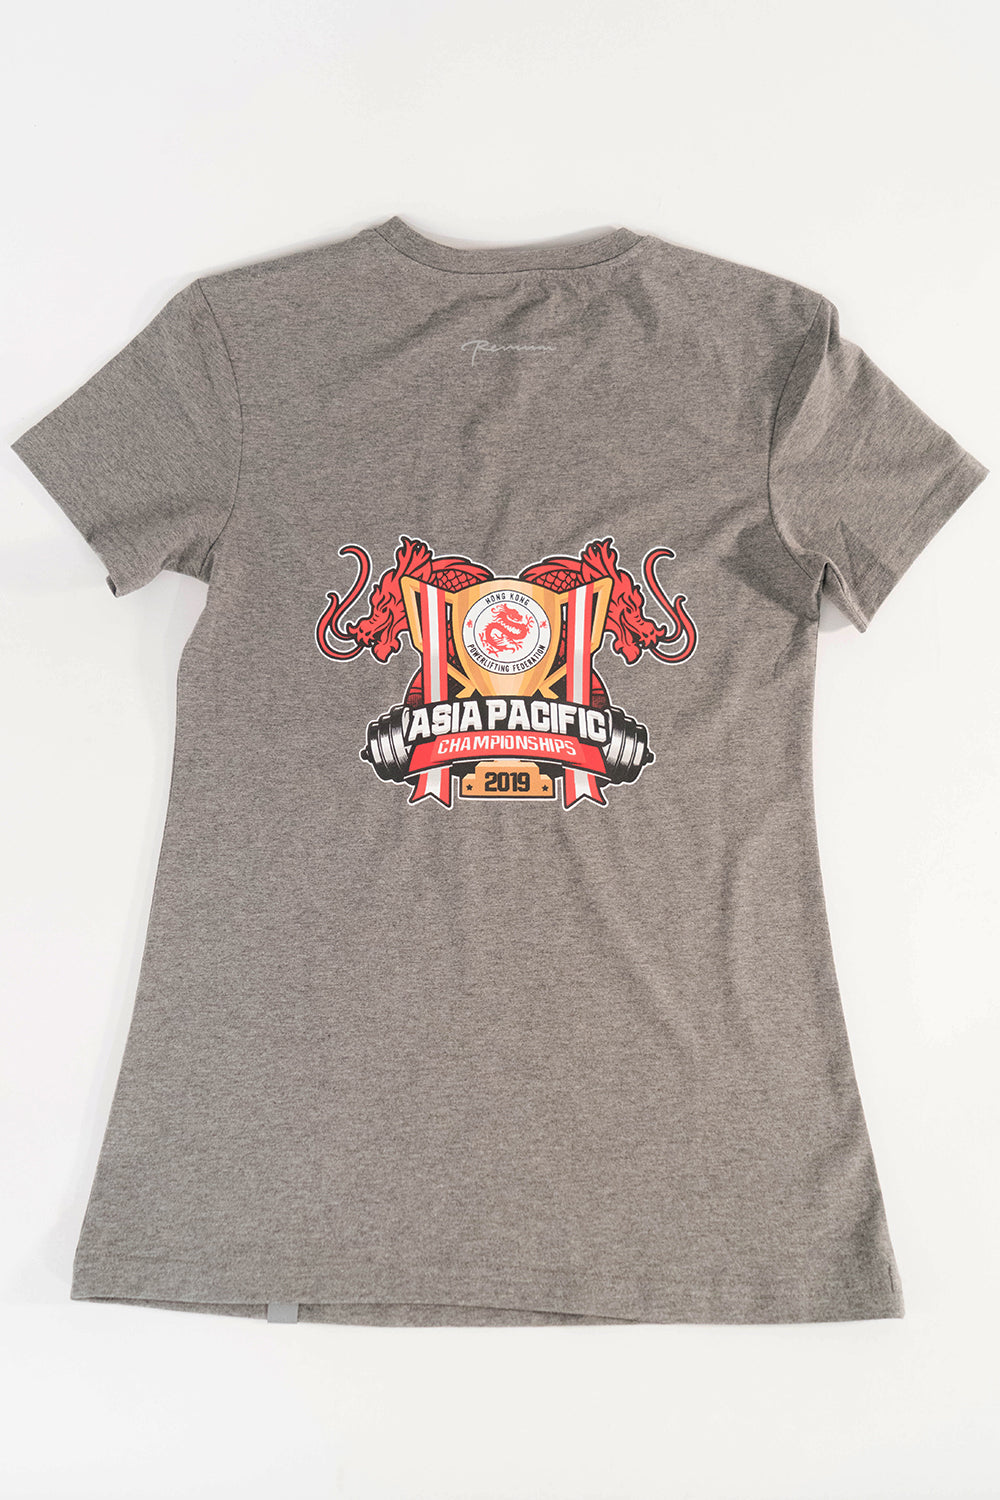 2019 HKPF Asia Pacific Women's T-shirt